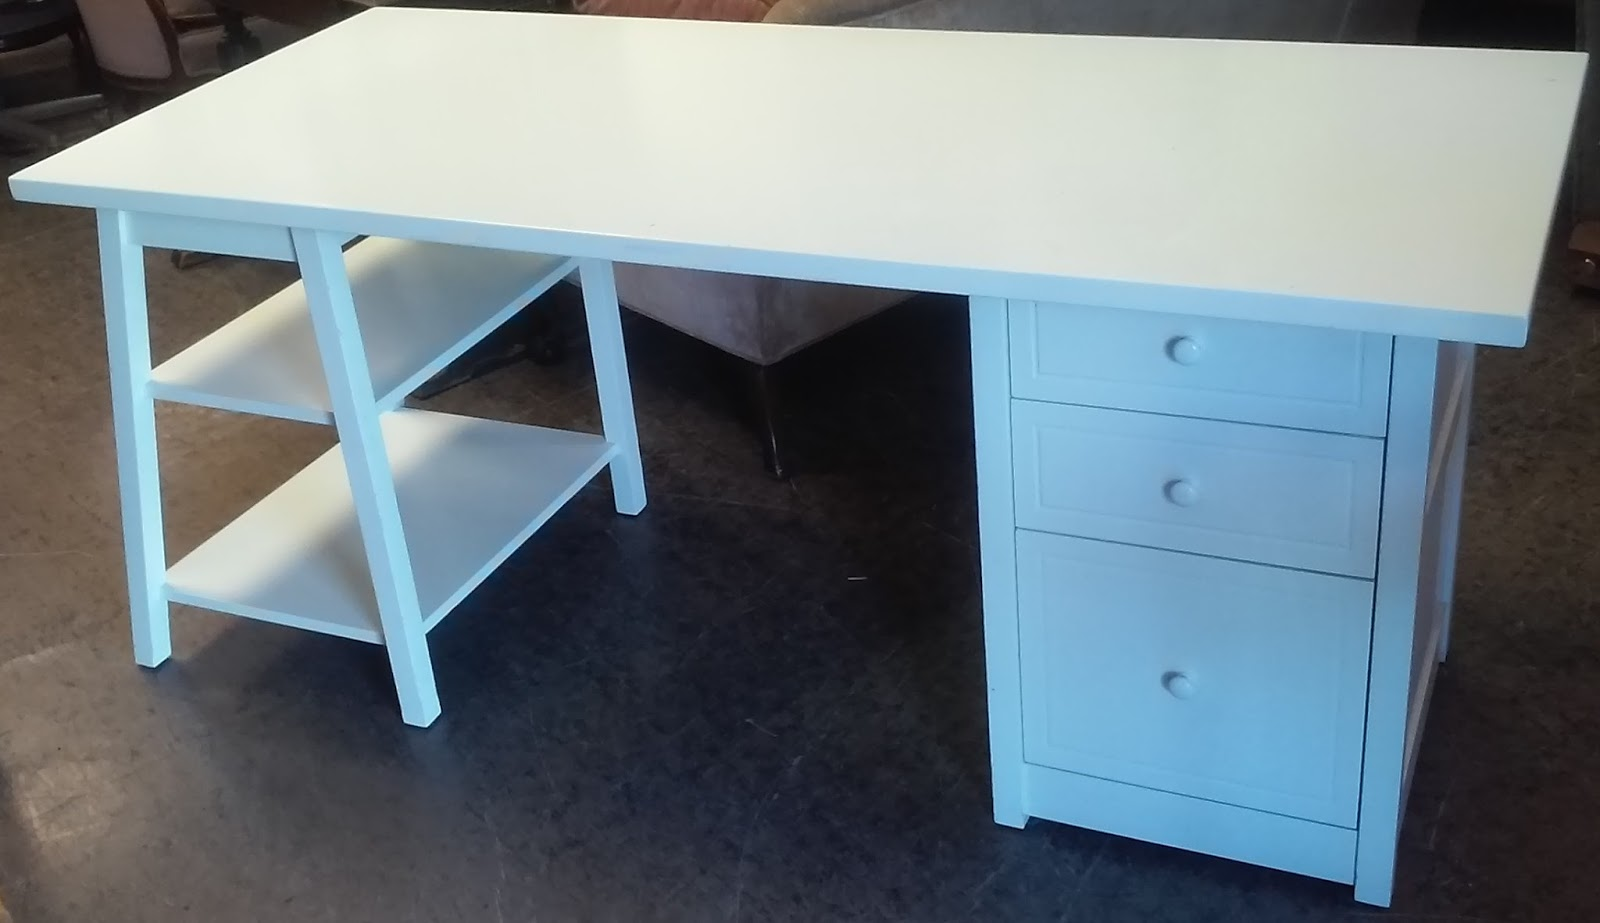 UHURU FURNITURE & COLLECTIBLES sold REDUCED Modern Modular Desk converts to nightstand and